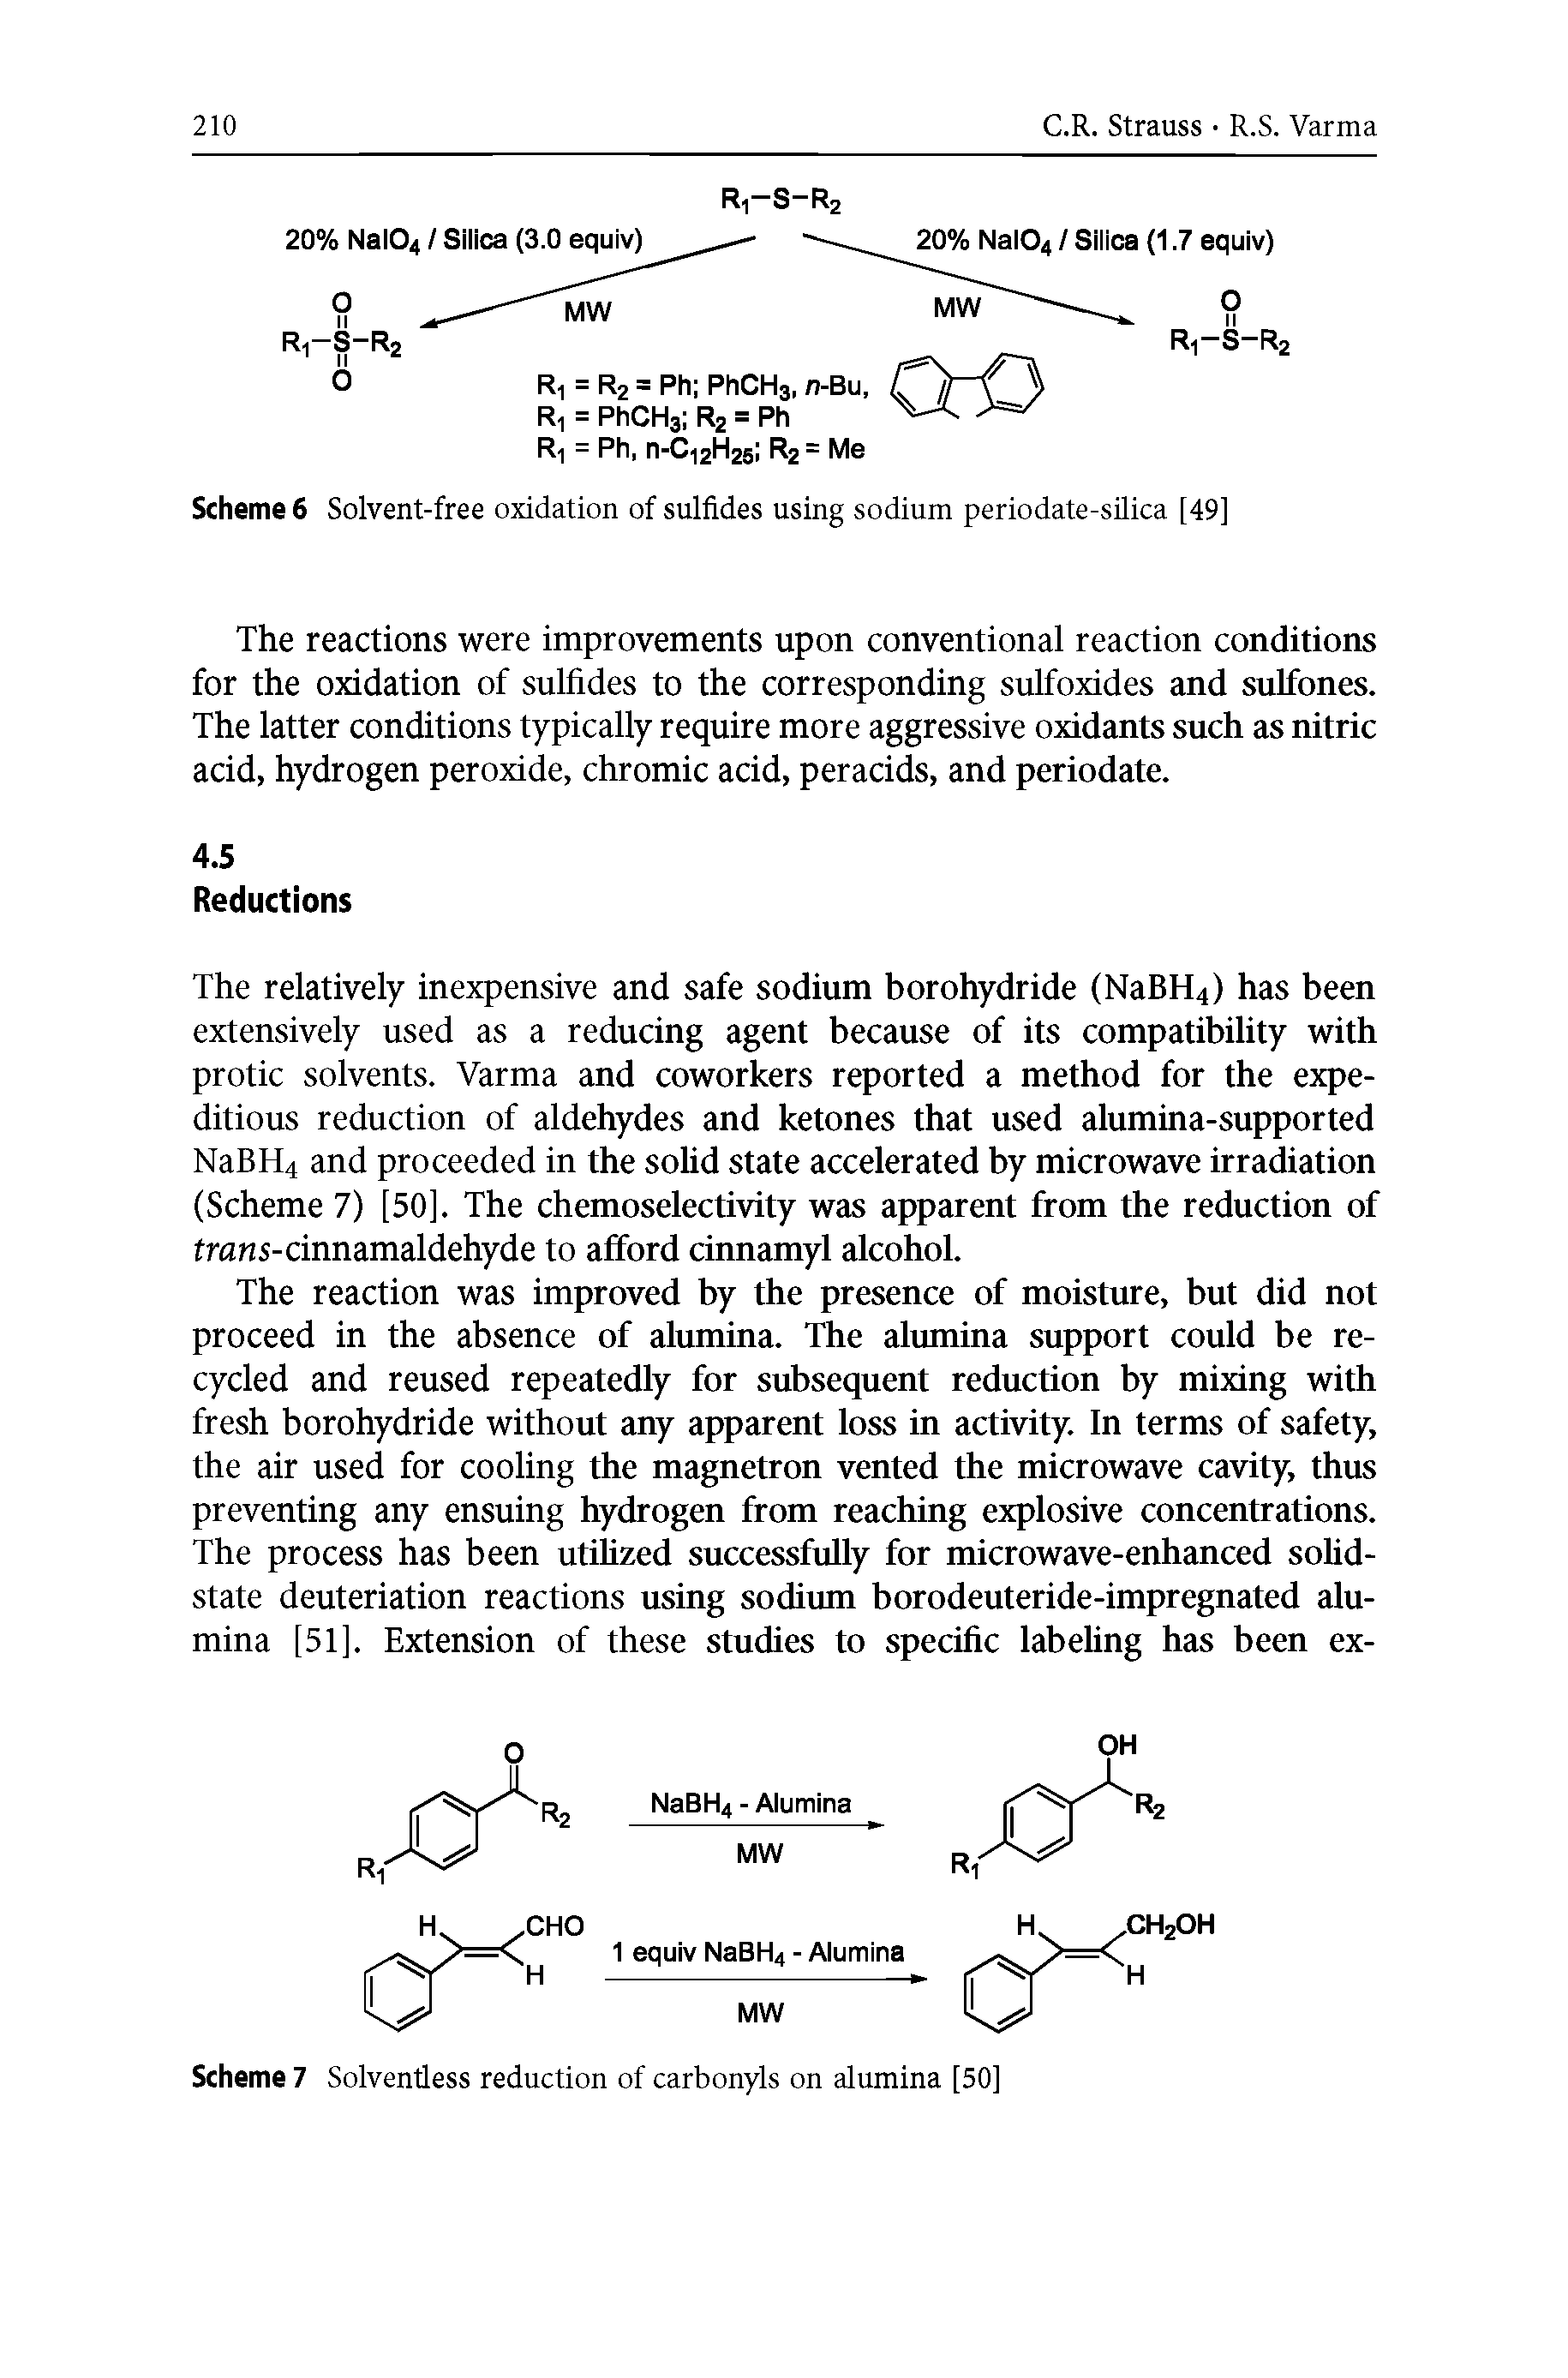 Scheme 6 Solvent-free oxidation of sulfides using sodium periodate-silica [49]...